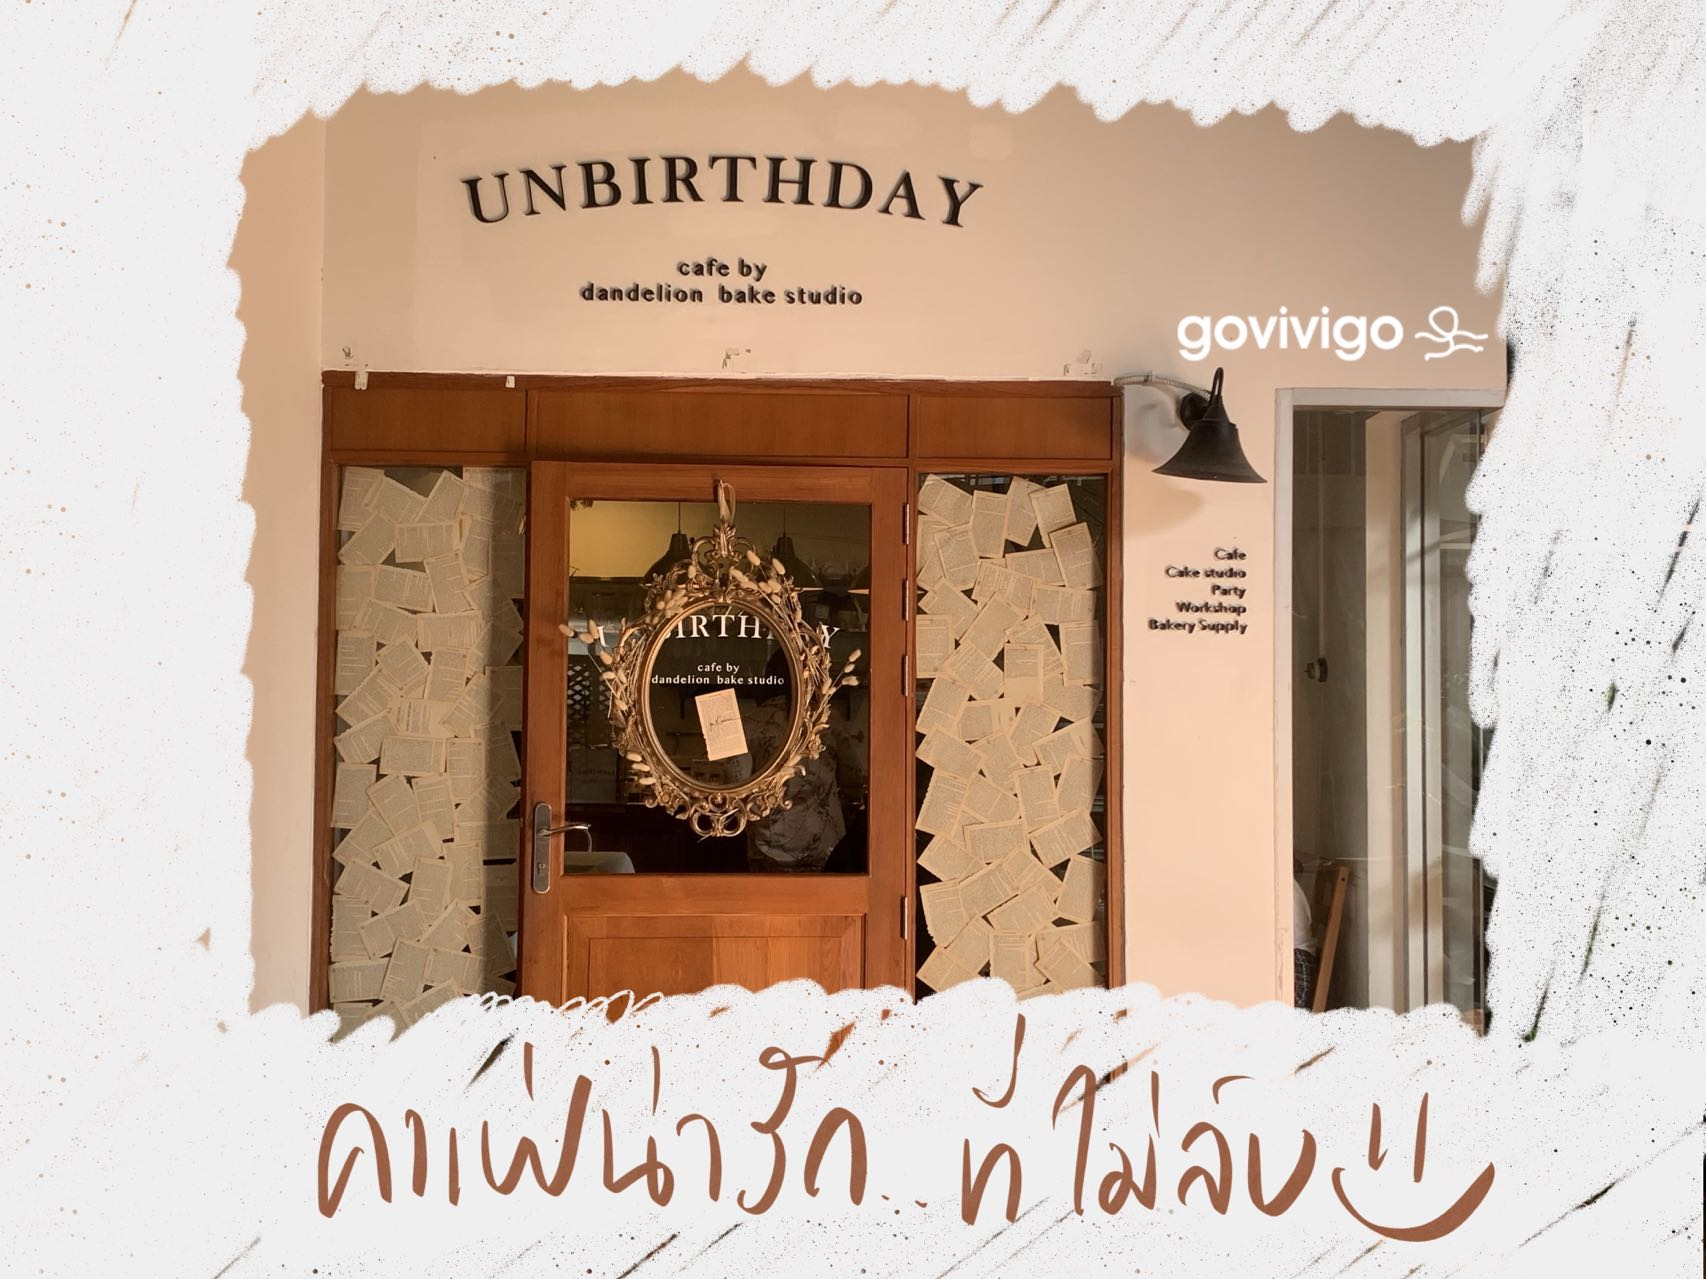 Unbirthday Cafe 😄 😁